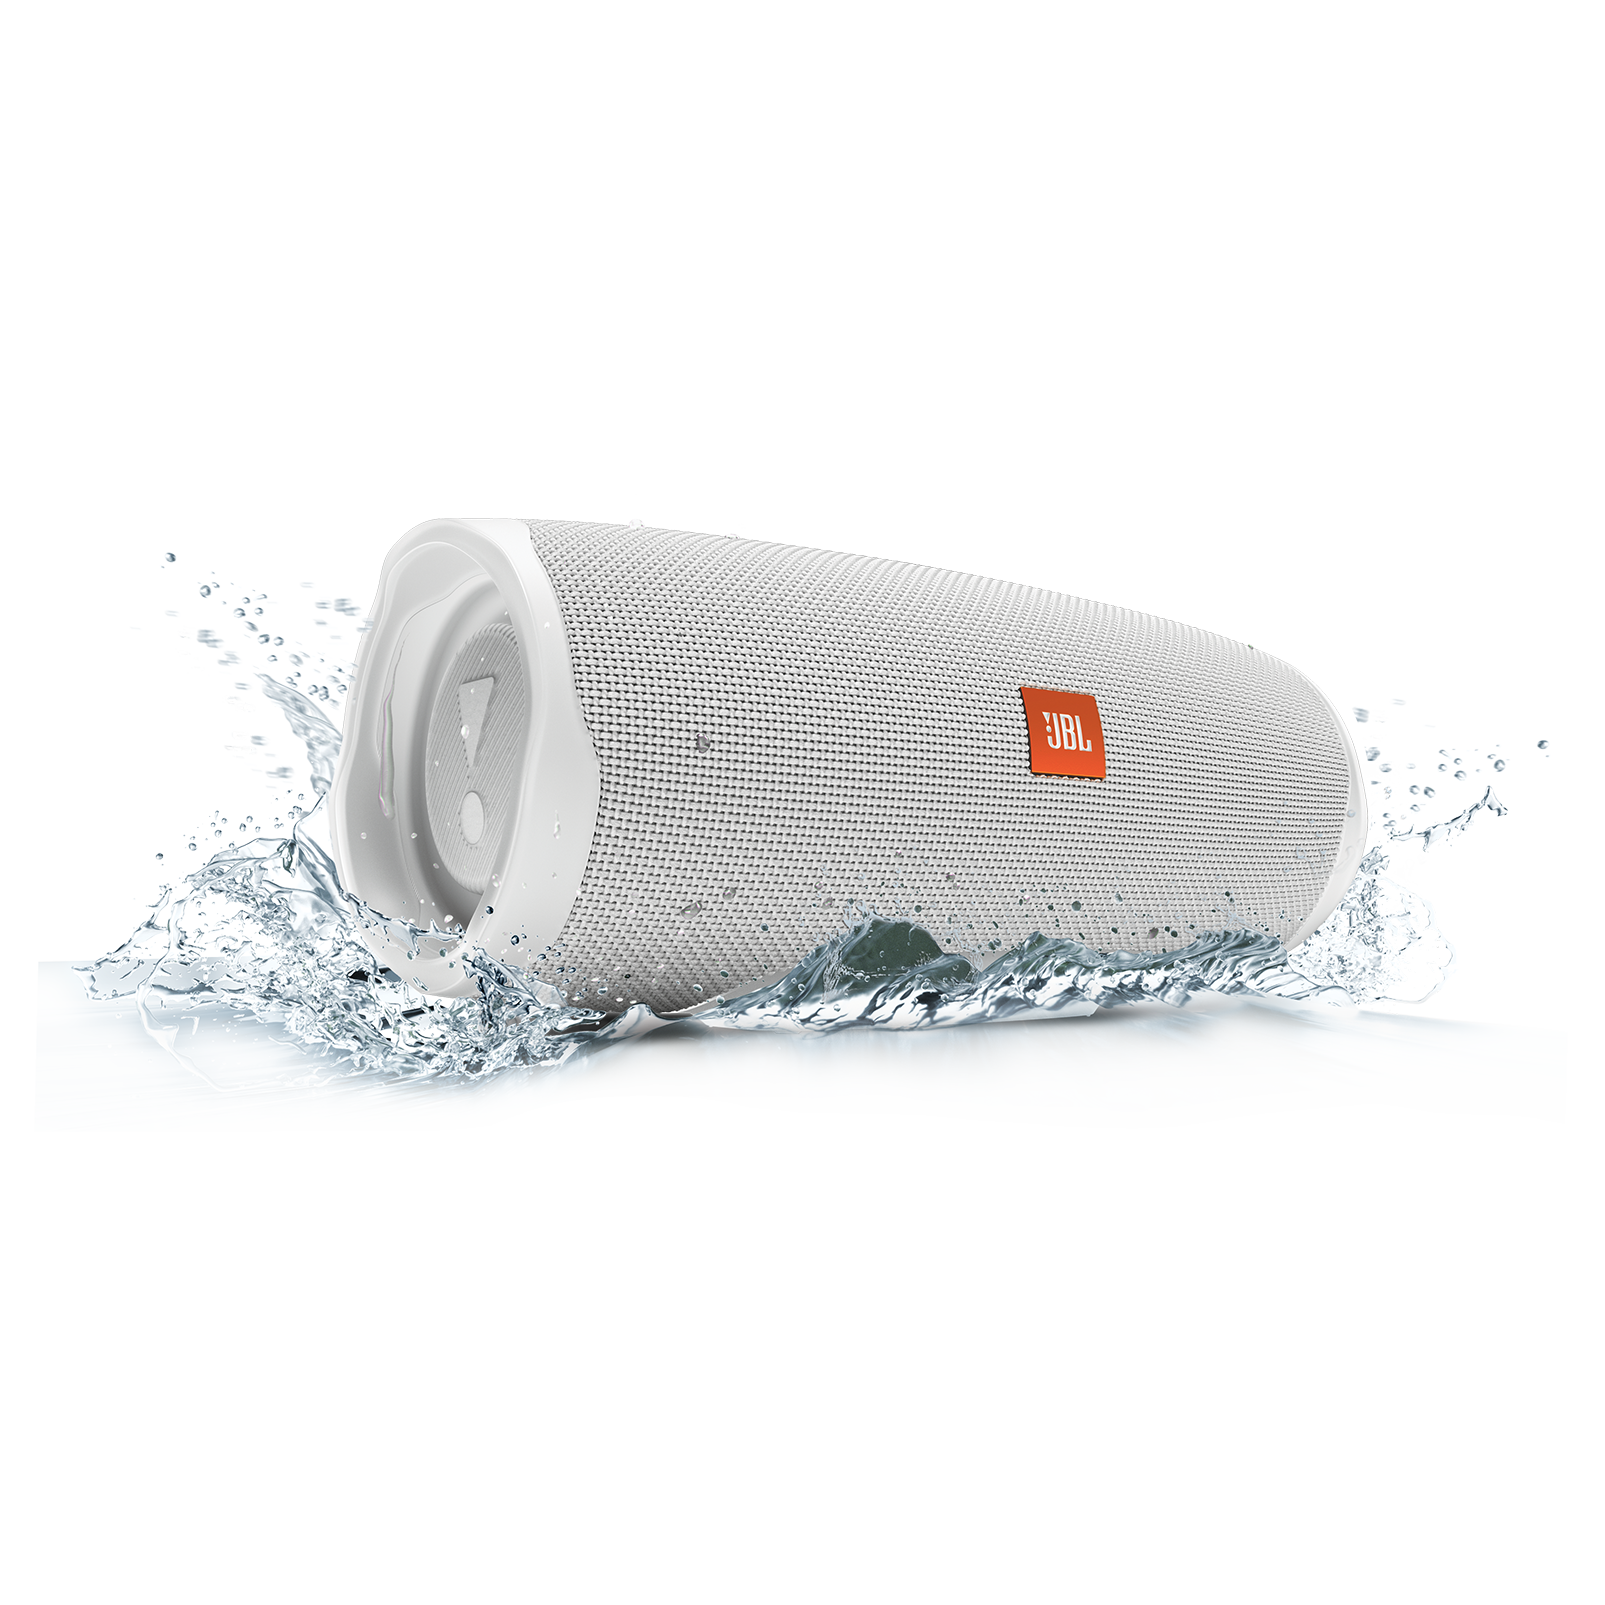 JBL Charge 4 - White - Portable Bluetooth speaker - Detailshot 5